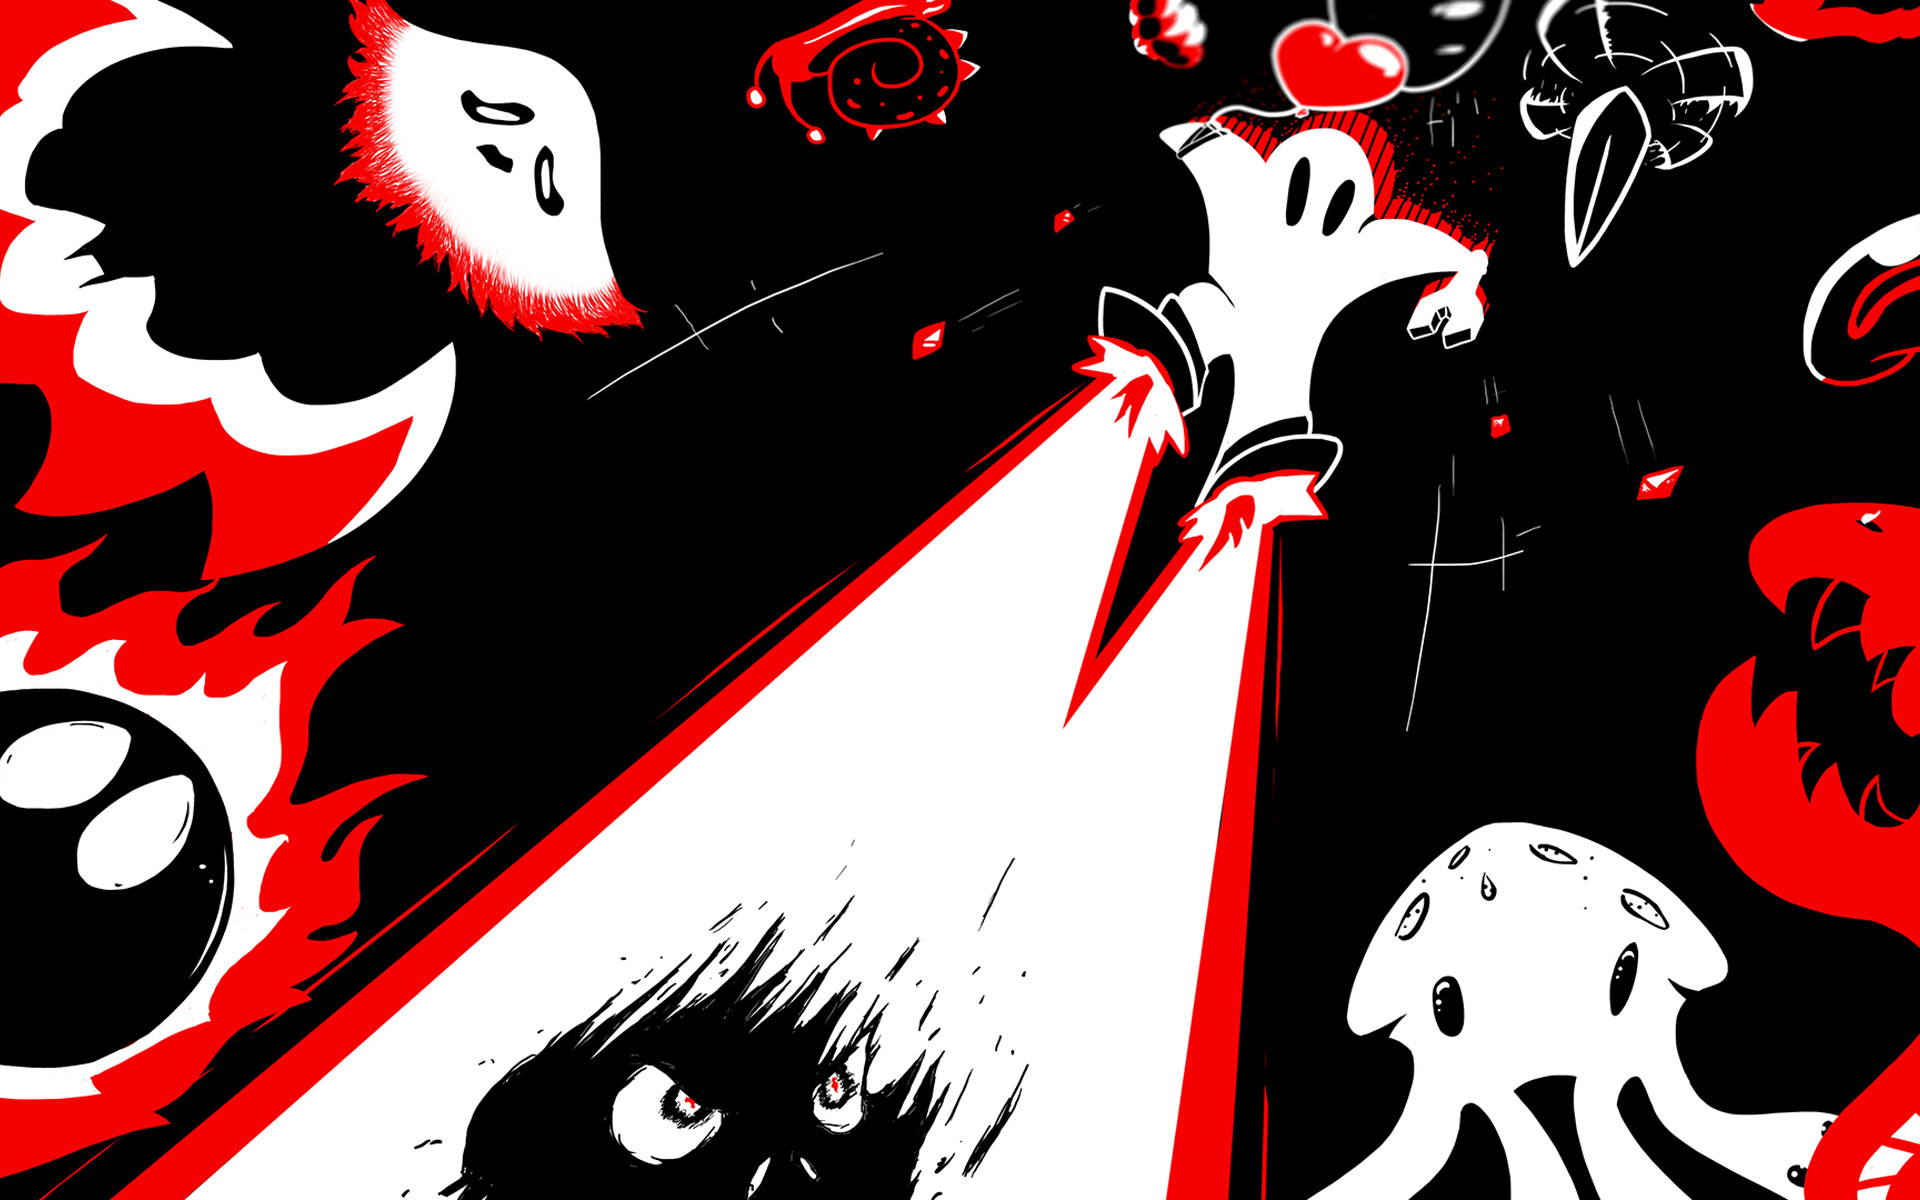 Free Downwell Wallpaper in 1920x1200